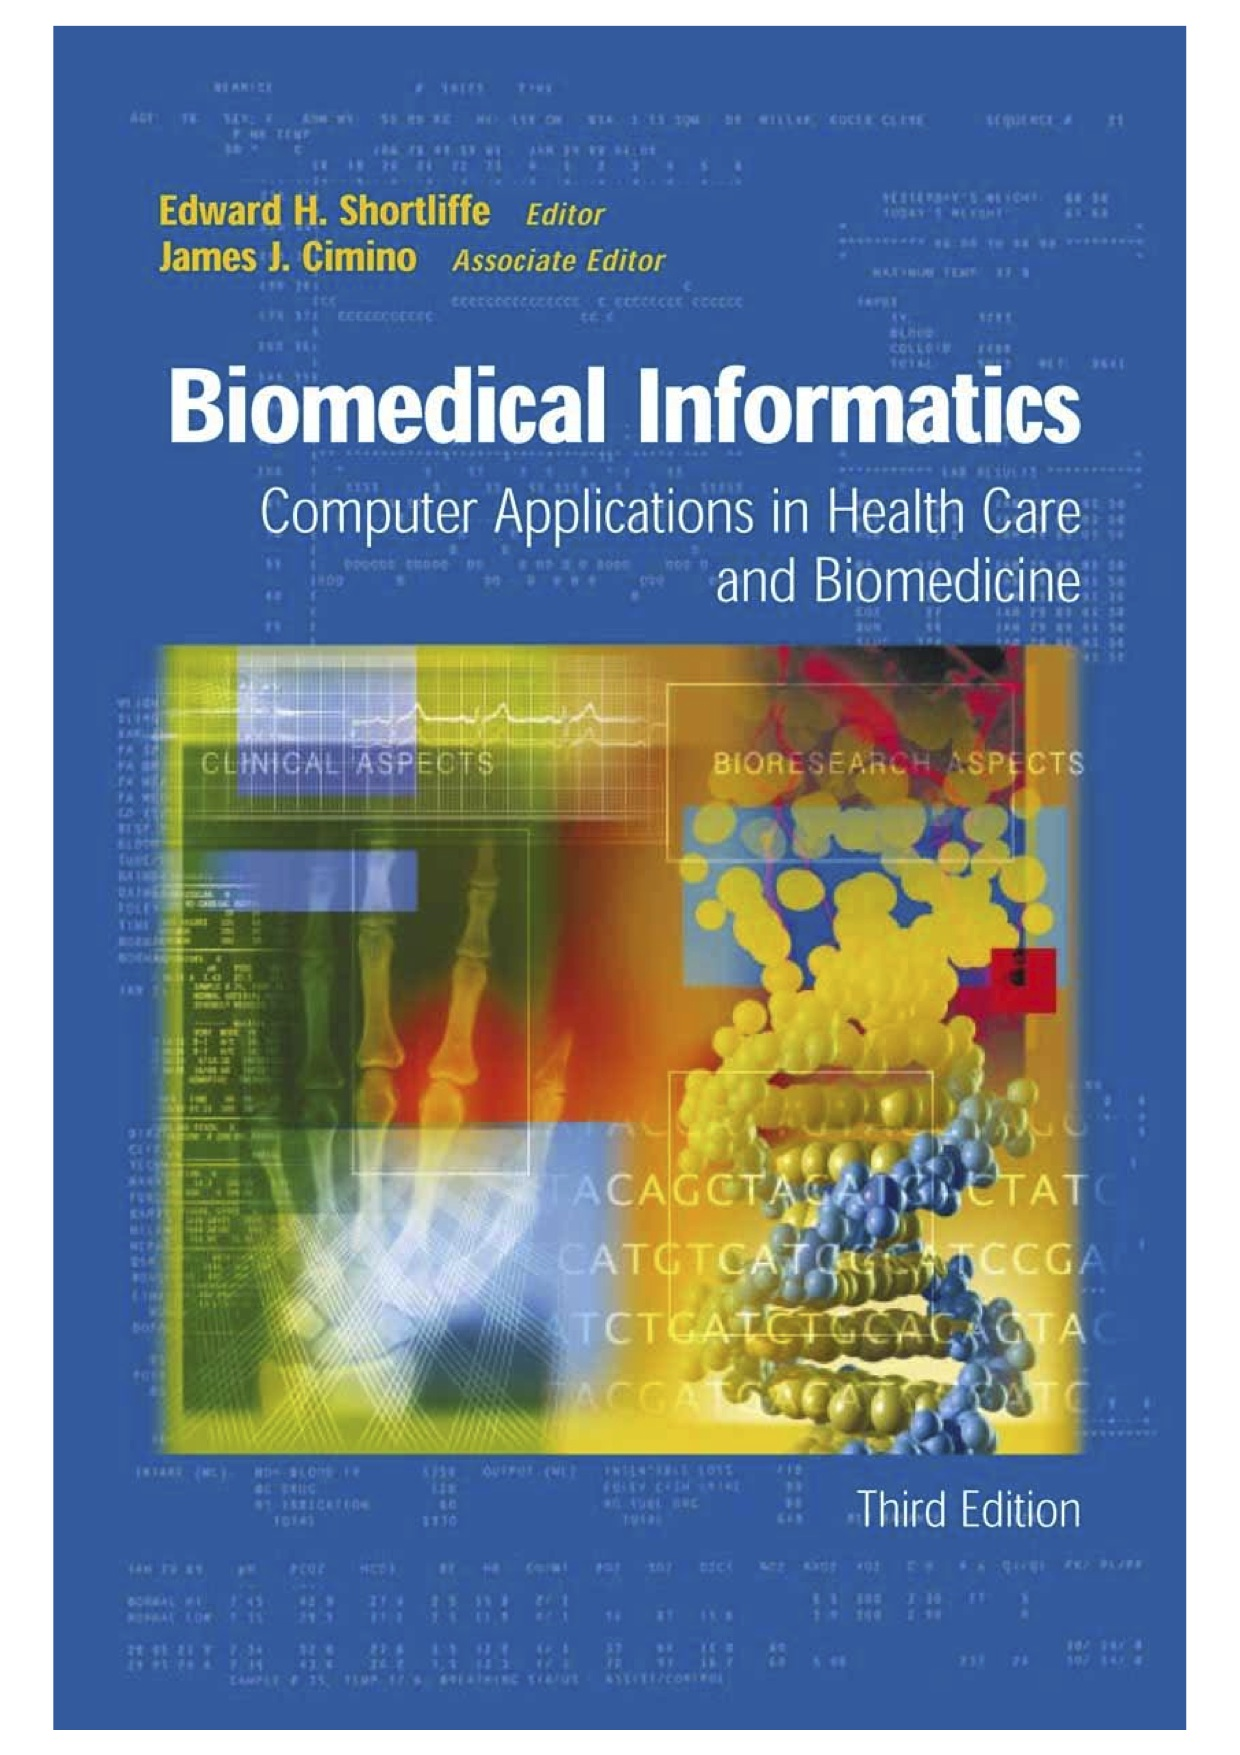 Health Informatics what are subjects